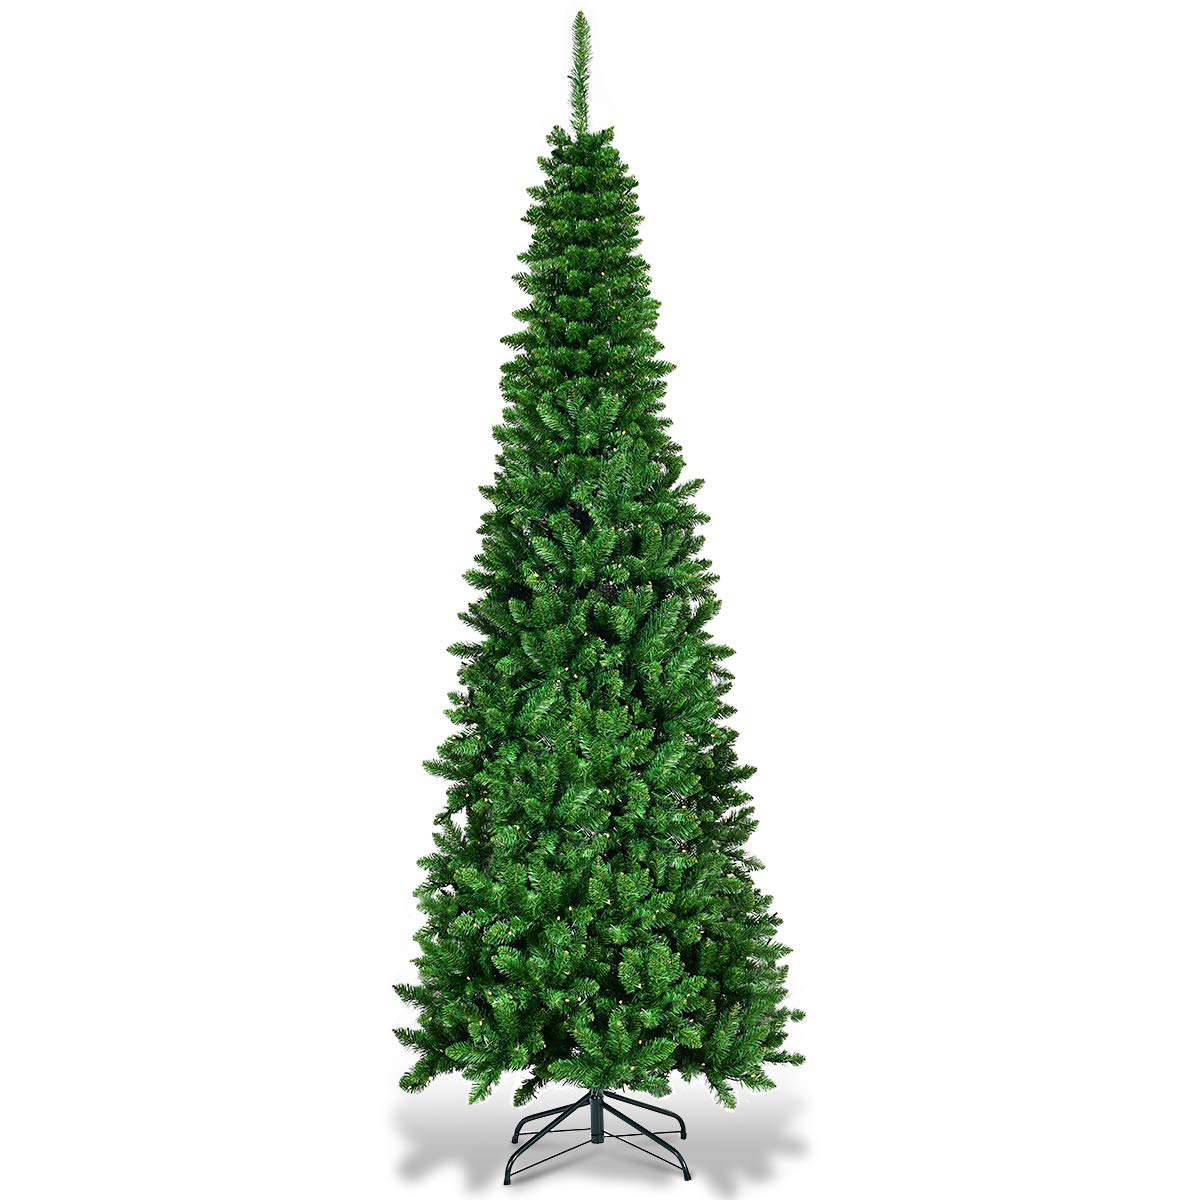 Goplus 7.5ft Prelit Pencil Christmas Tree, Premium Hinged Fir Tree, with LED Lights and Solid Metal Stand, Easy Assemble, Ideal Artificial Xmas Tree for Home and Office, Warm White LED